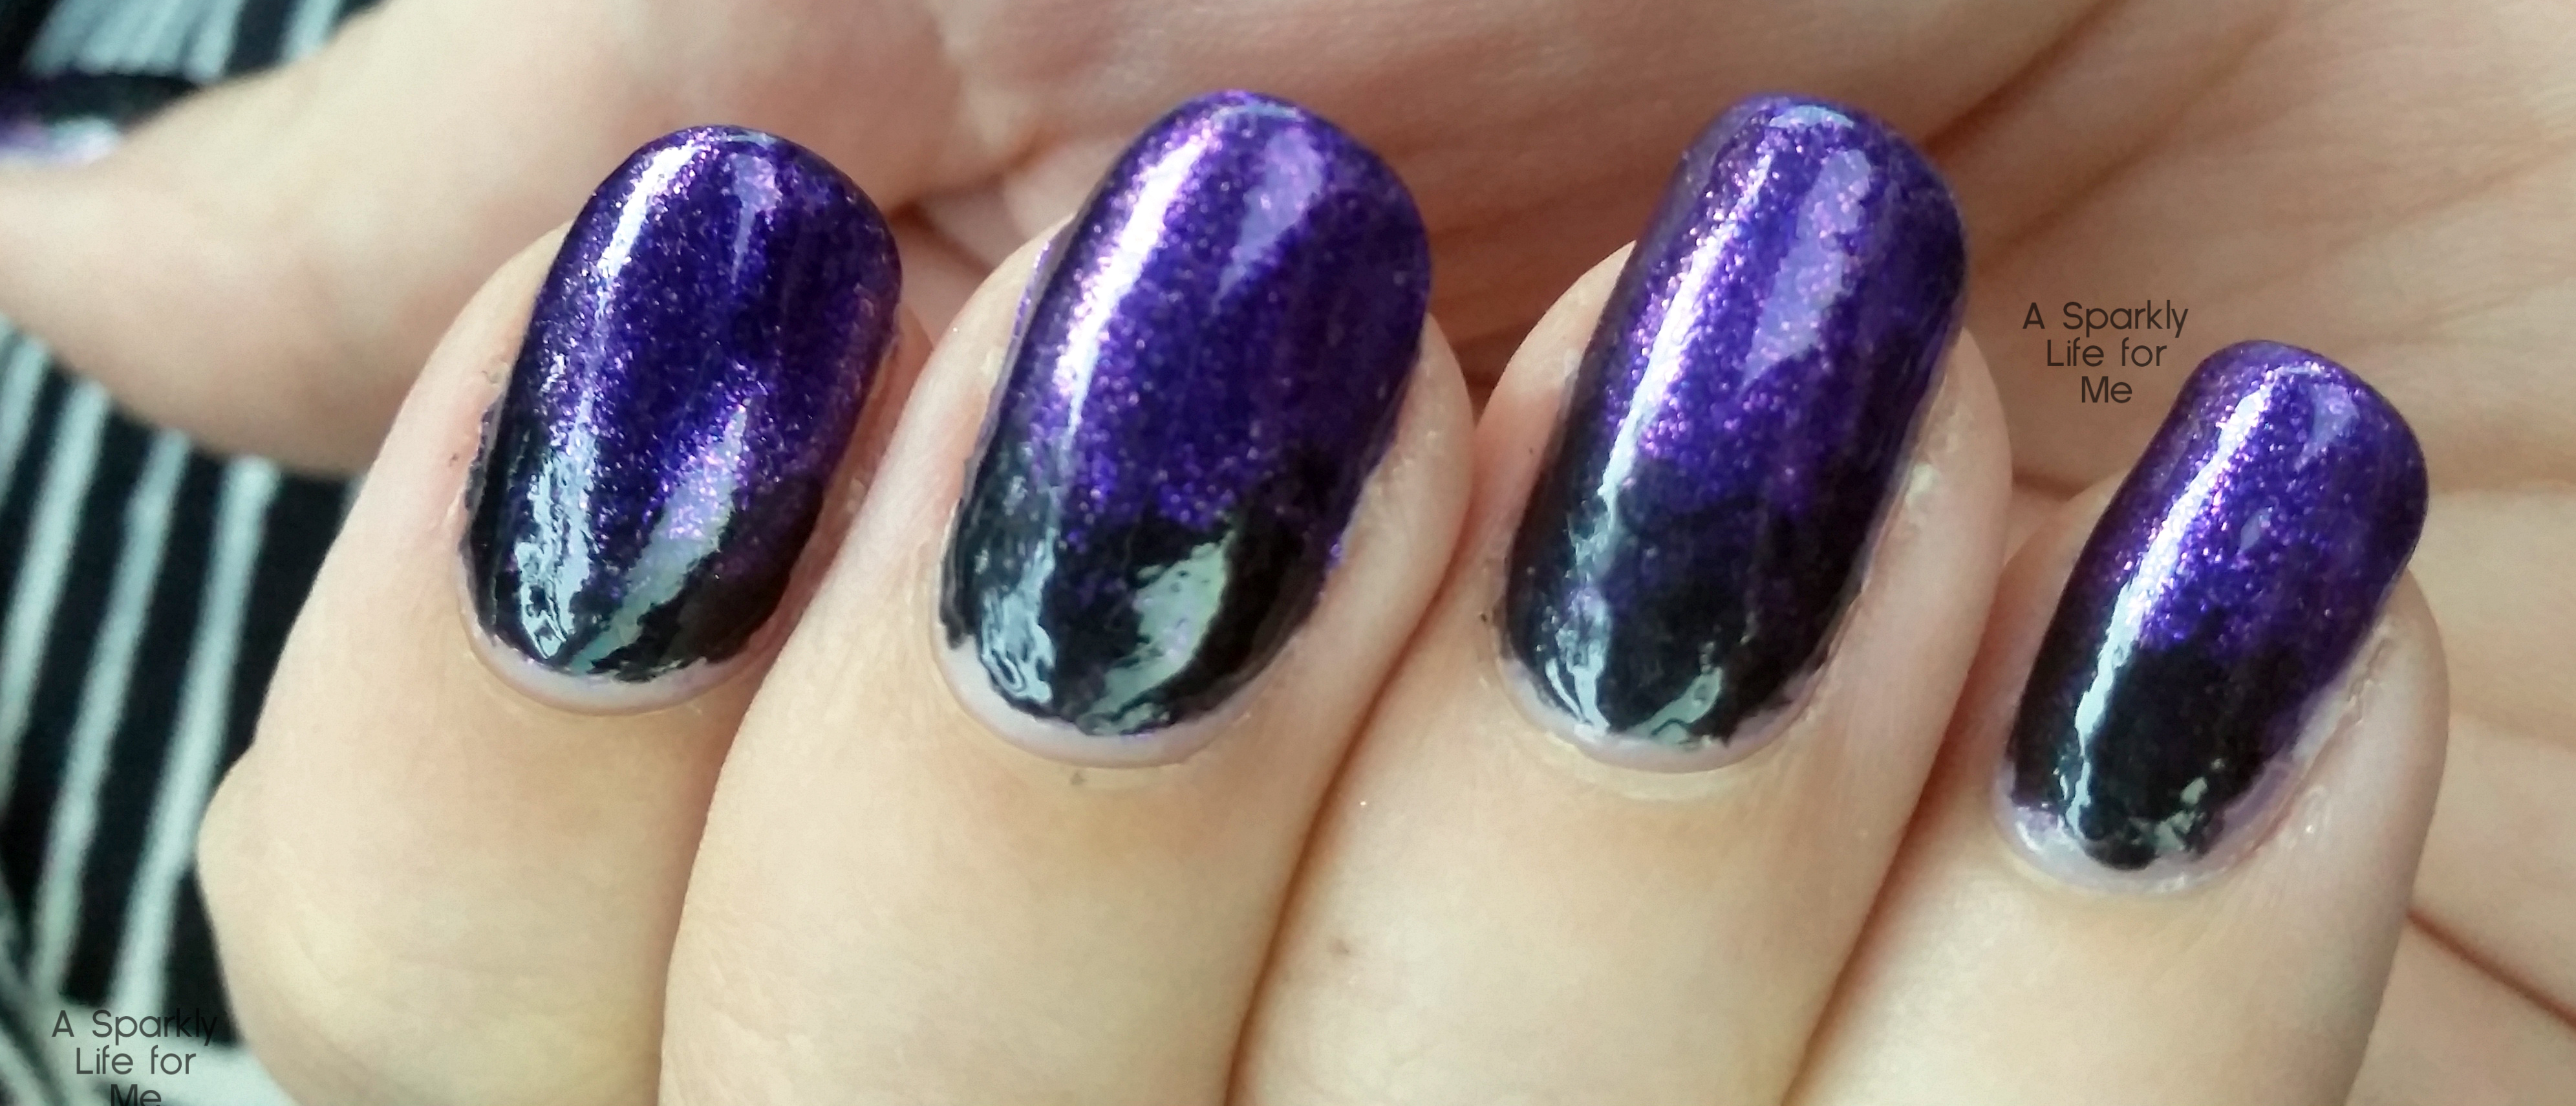 purple and black gradient nails a simple halloween nail art look halloween easy nail art - Halloween Easy Nail Art